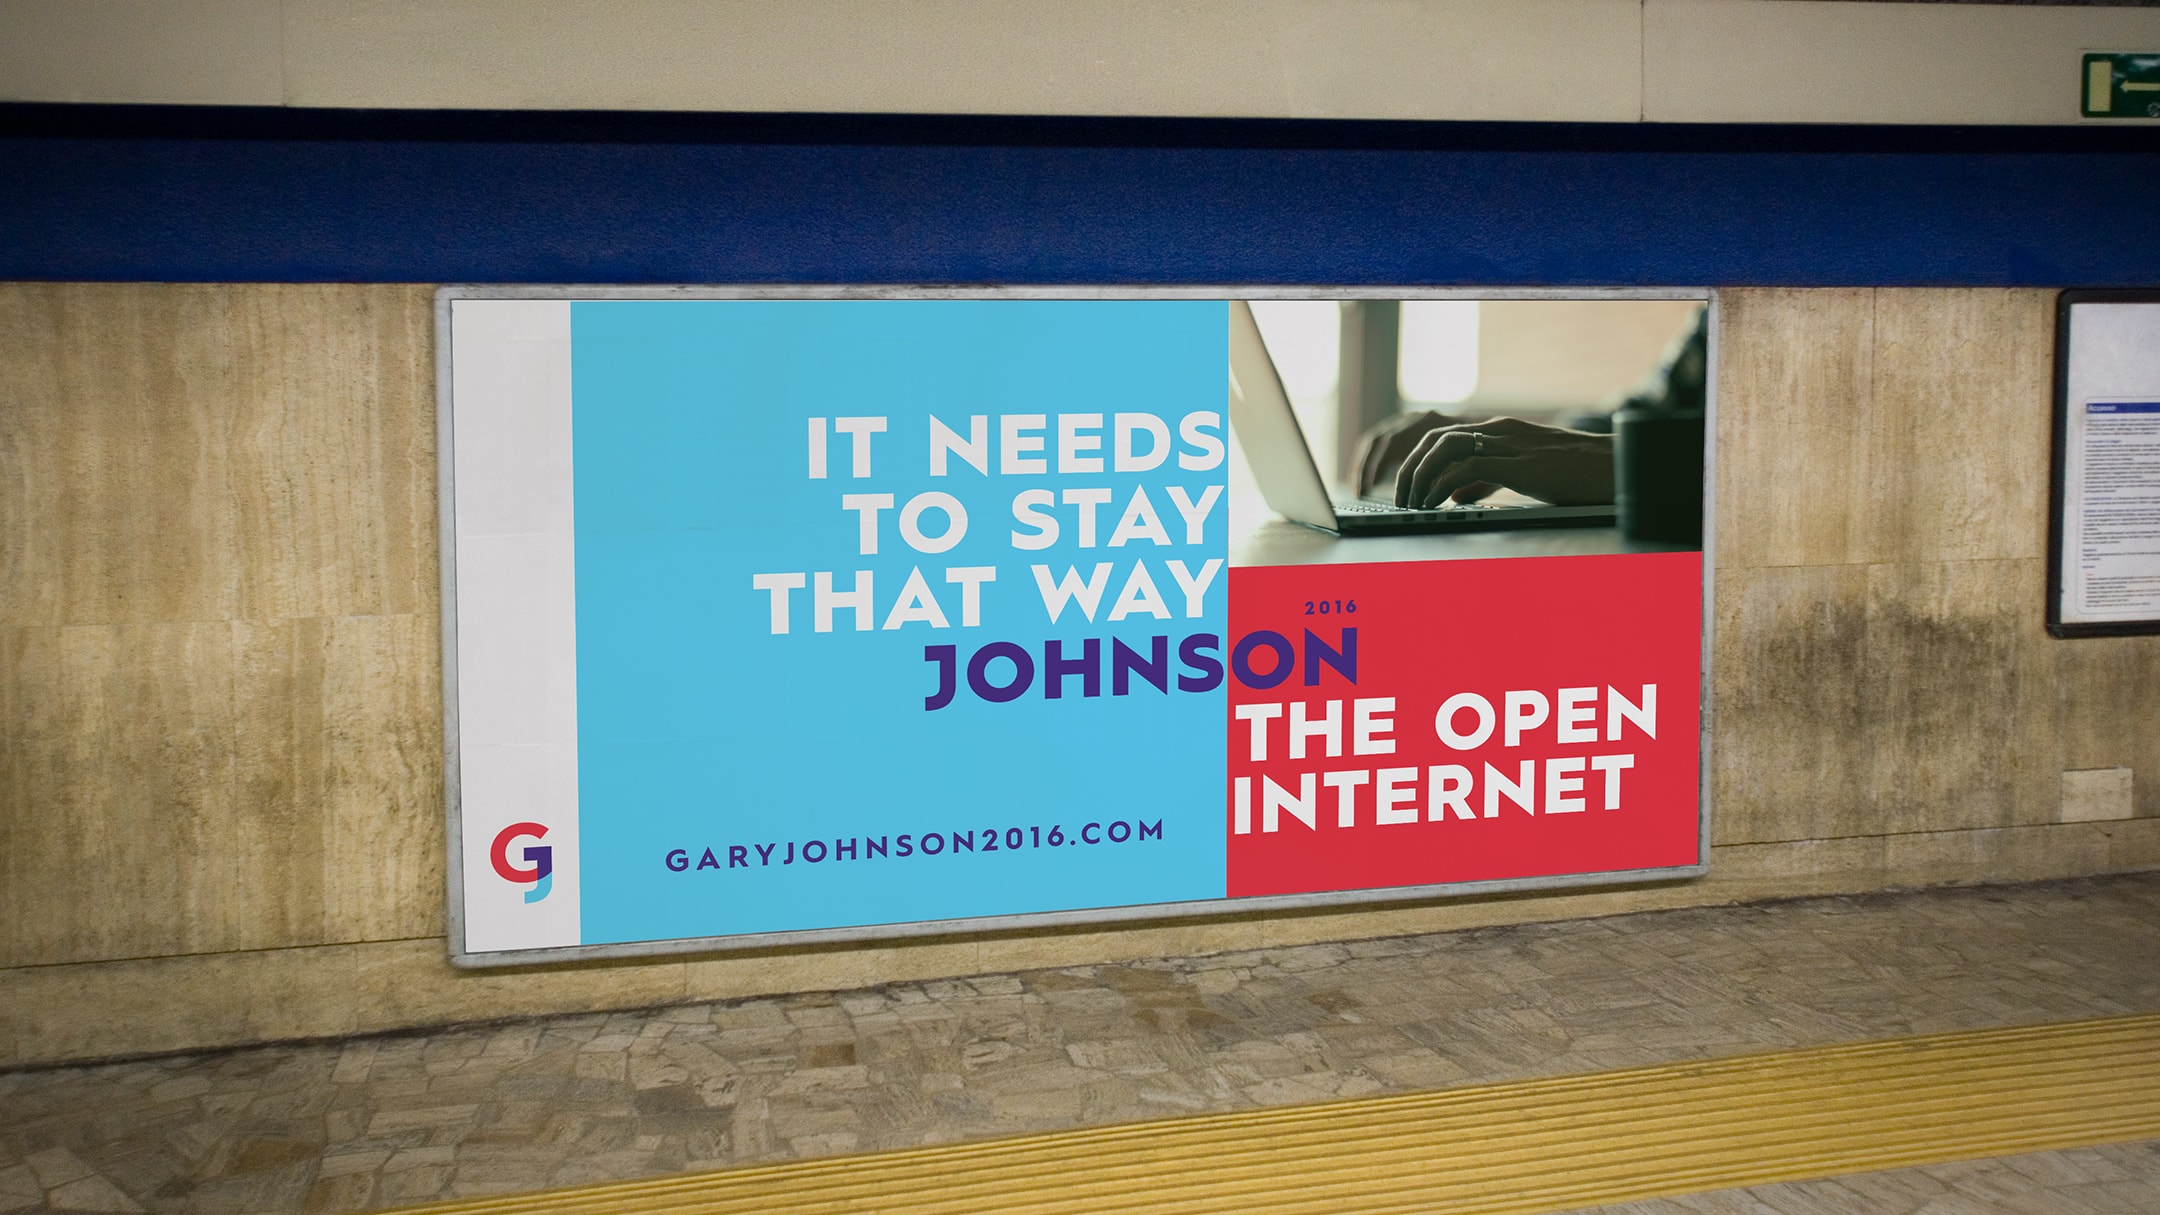 Gary Johnson spec campaign metro ad